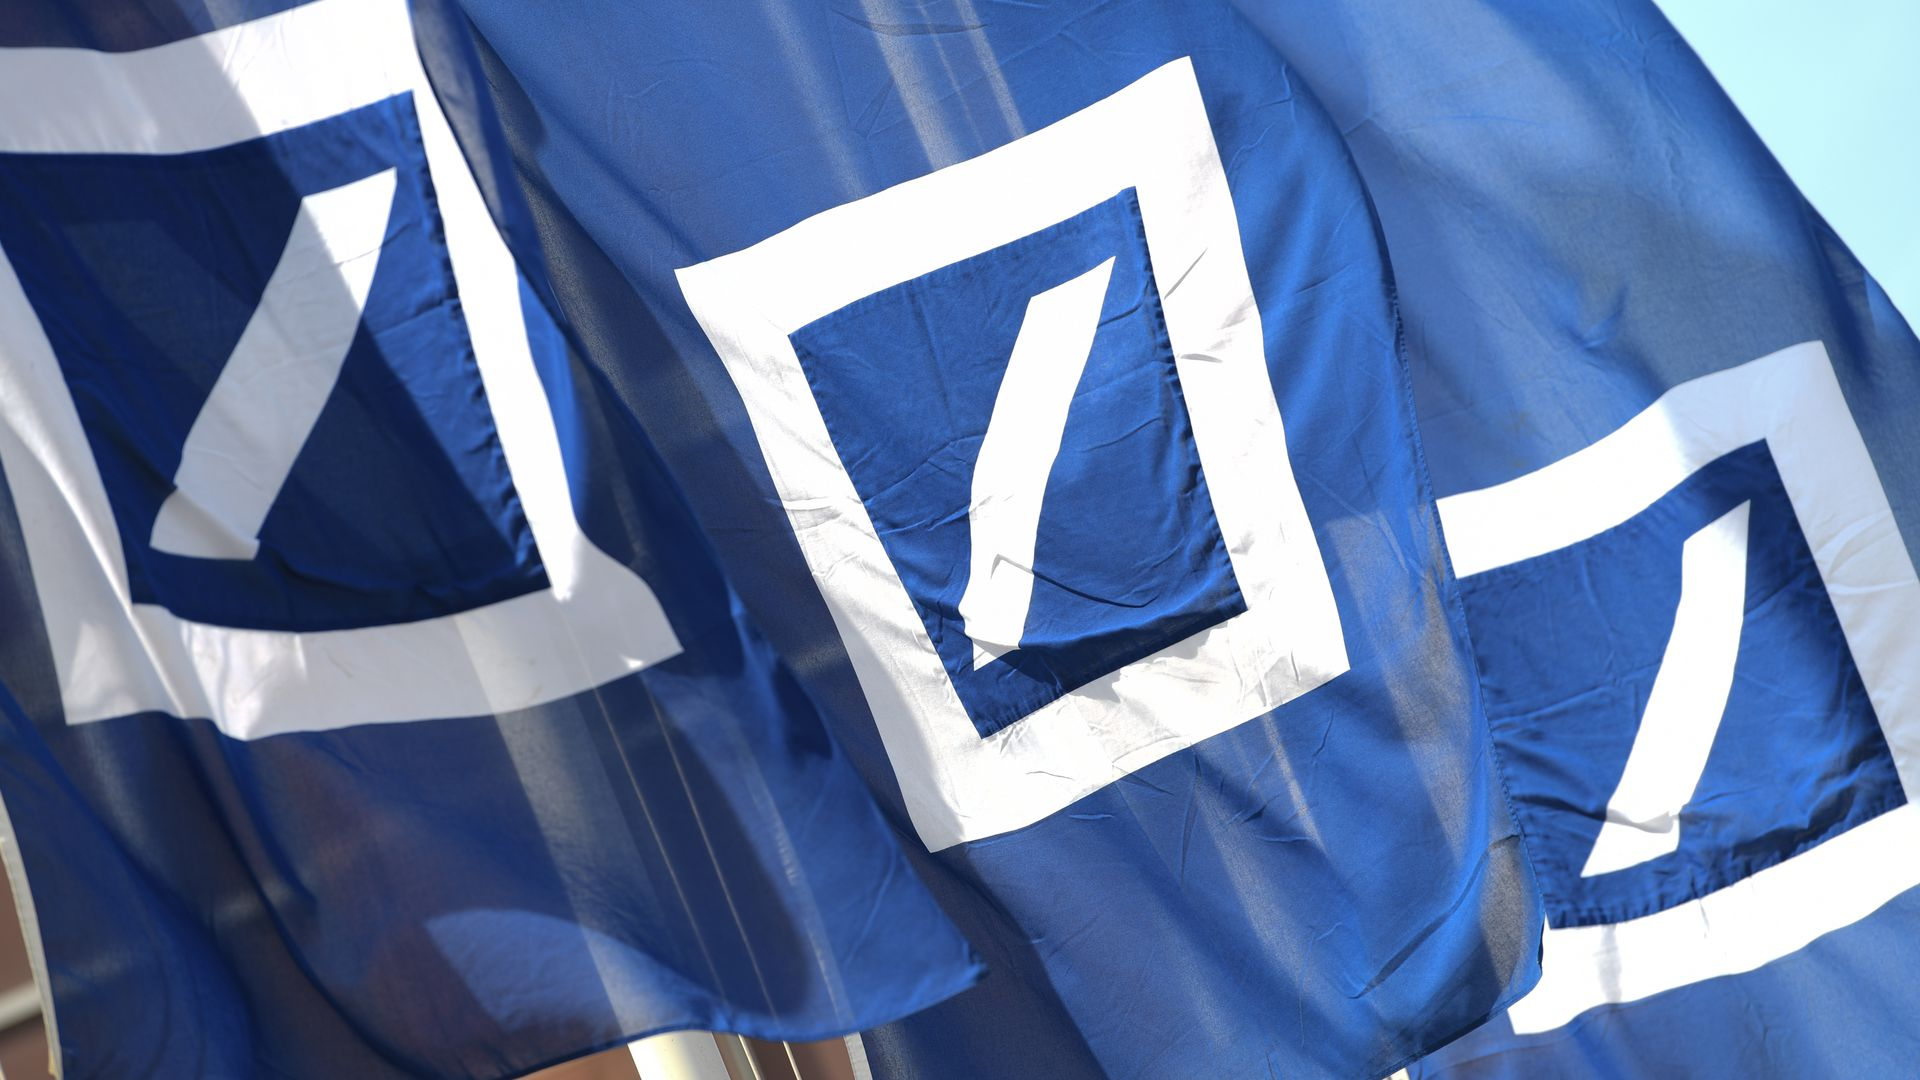 Deutsche Bank flags fly outside the bank's annual meeting.